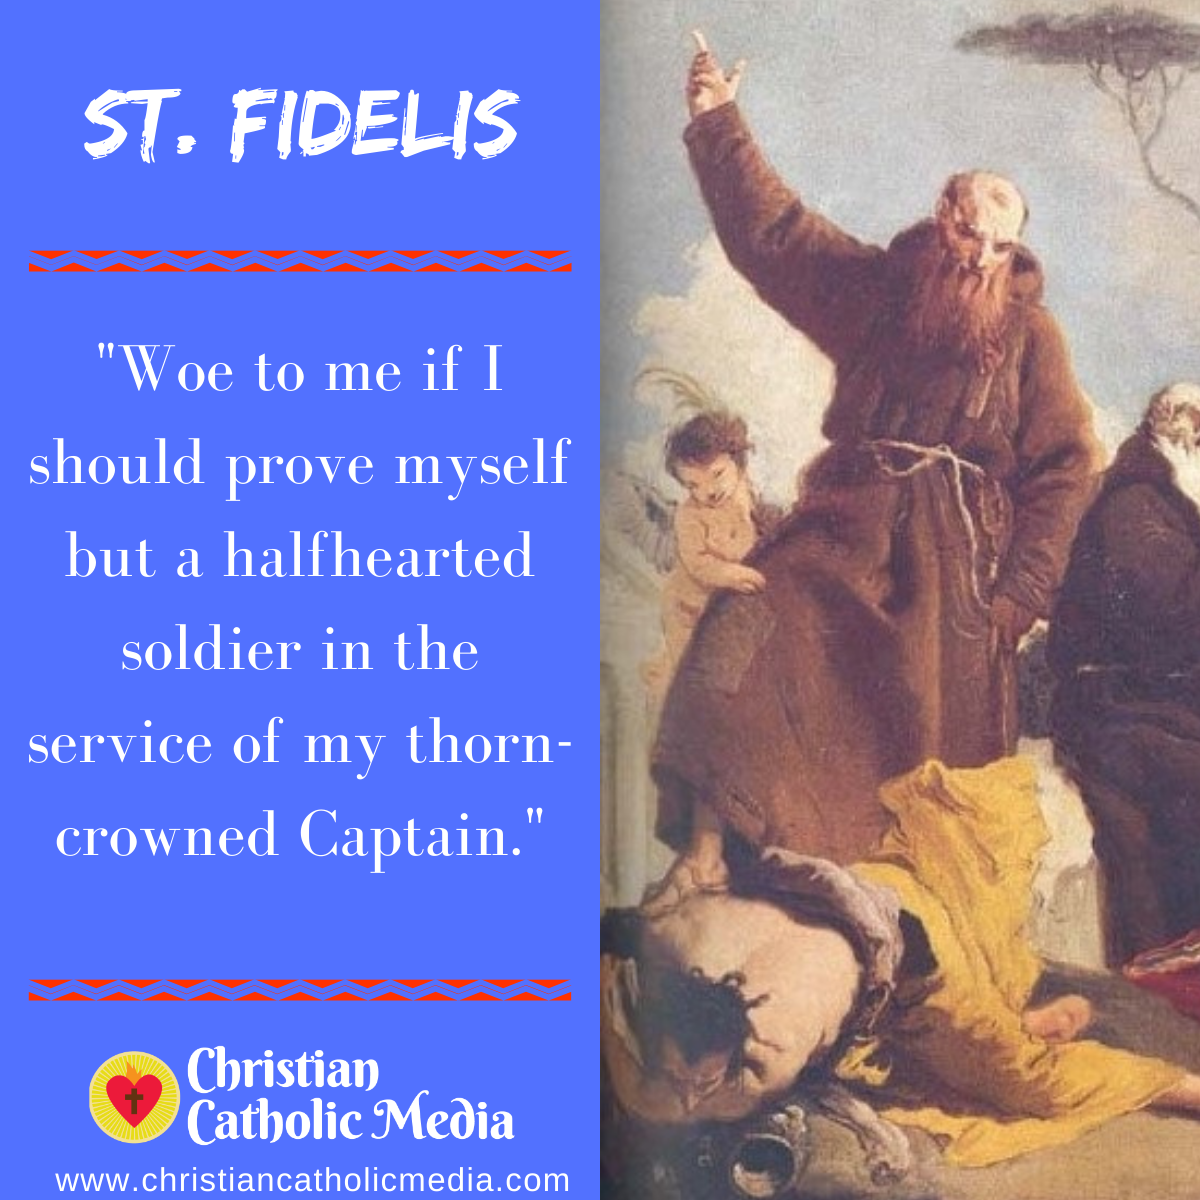 St. Fidelis - Saturday April 24, 2021